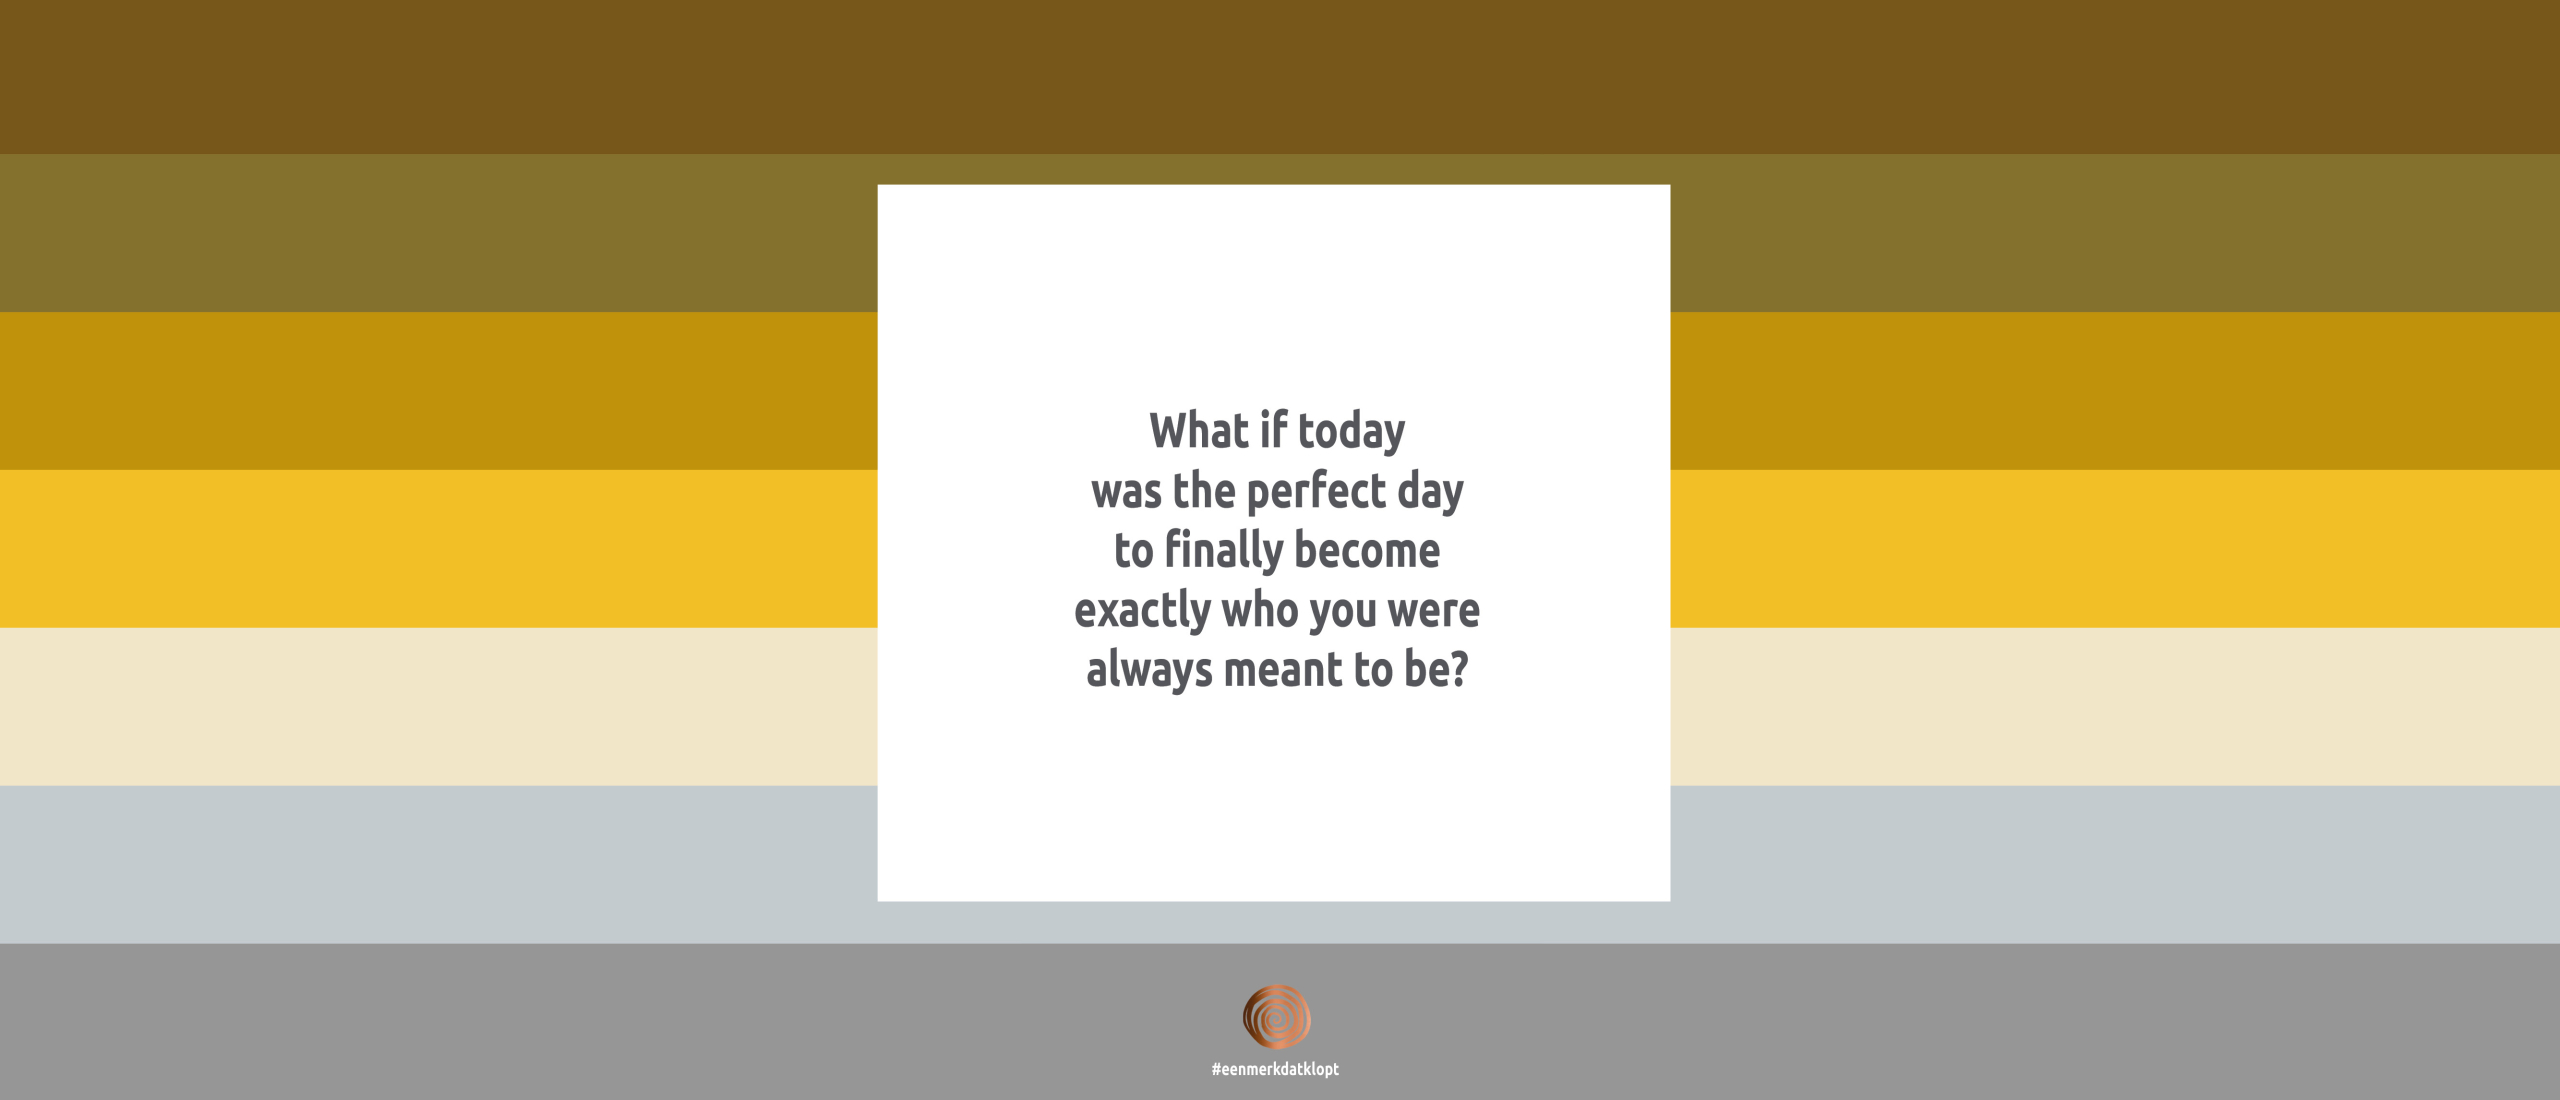 What if today was the perfect day